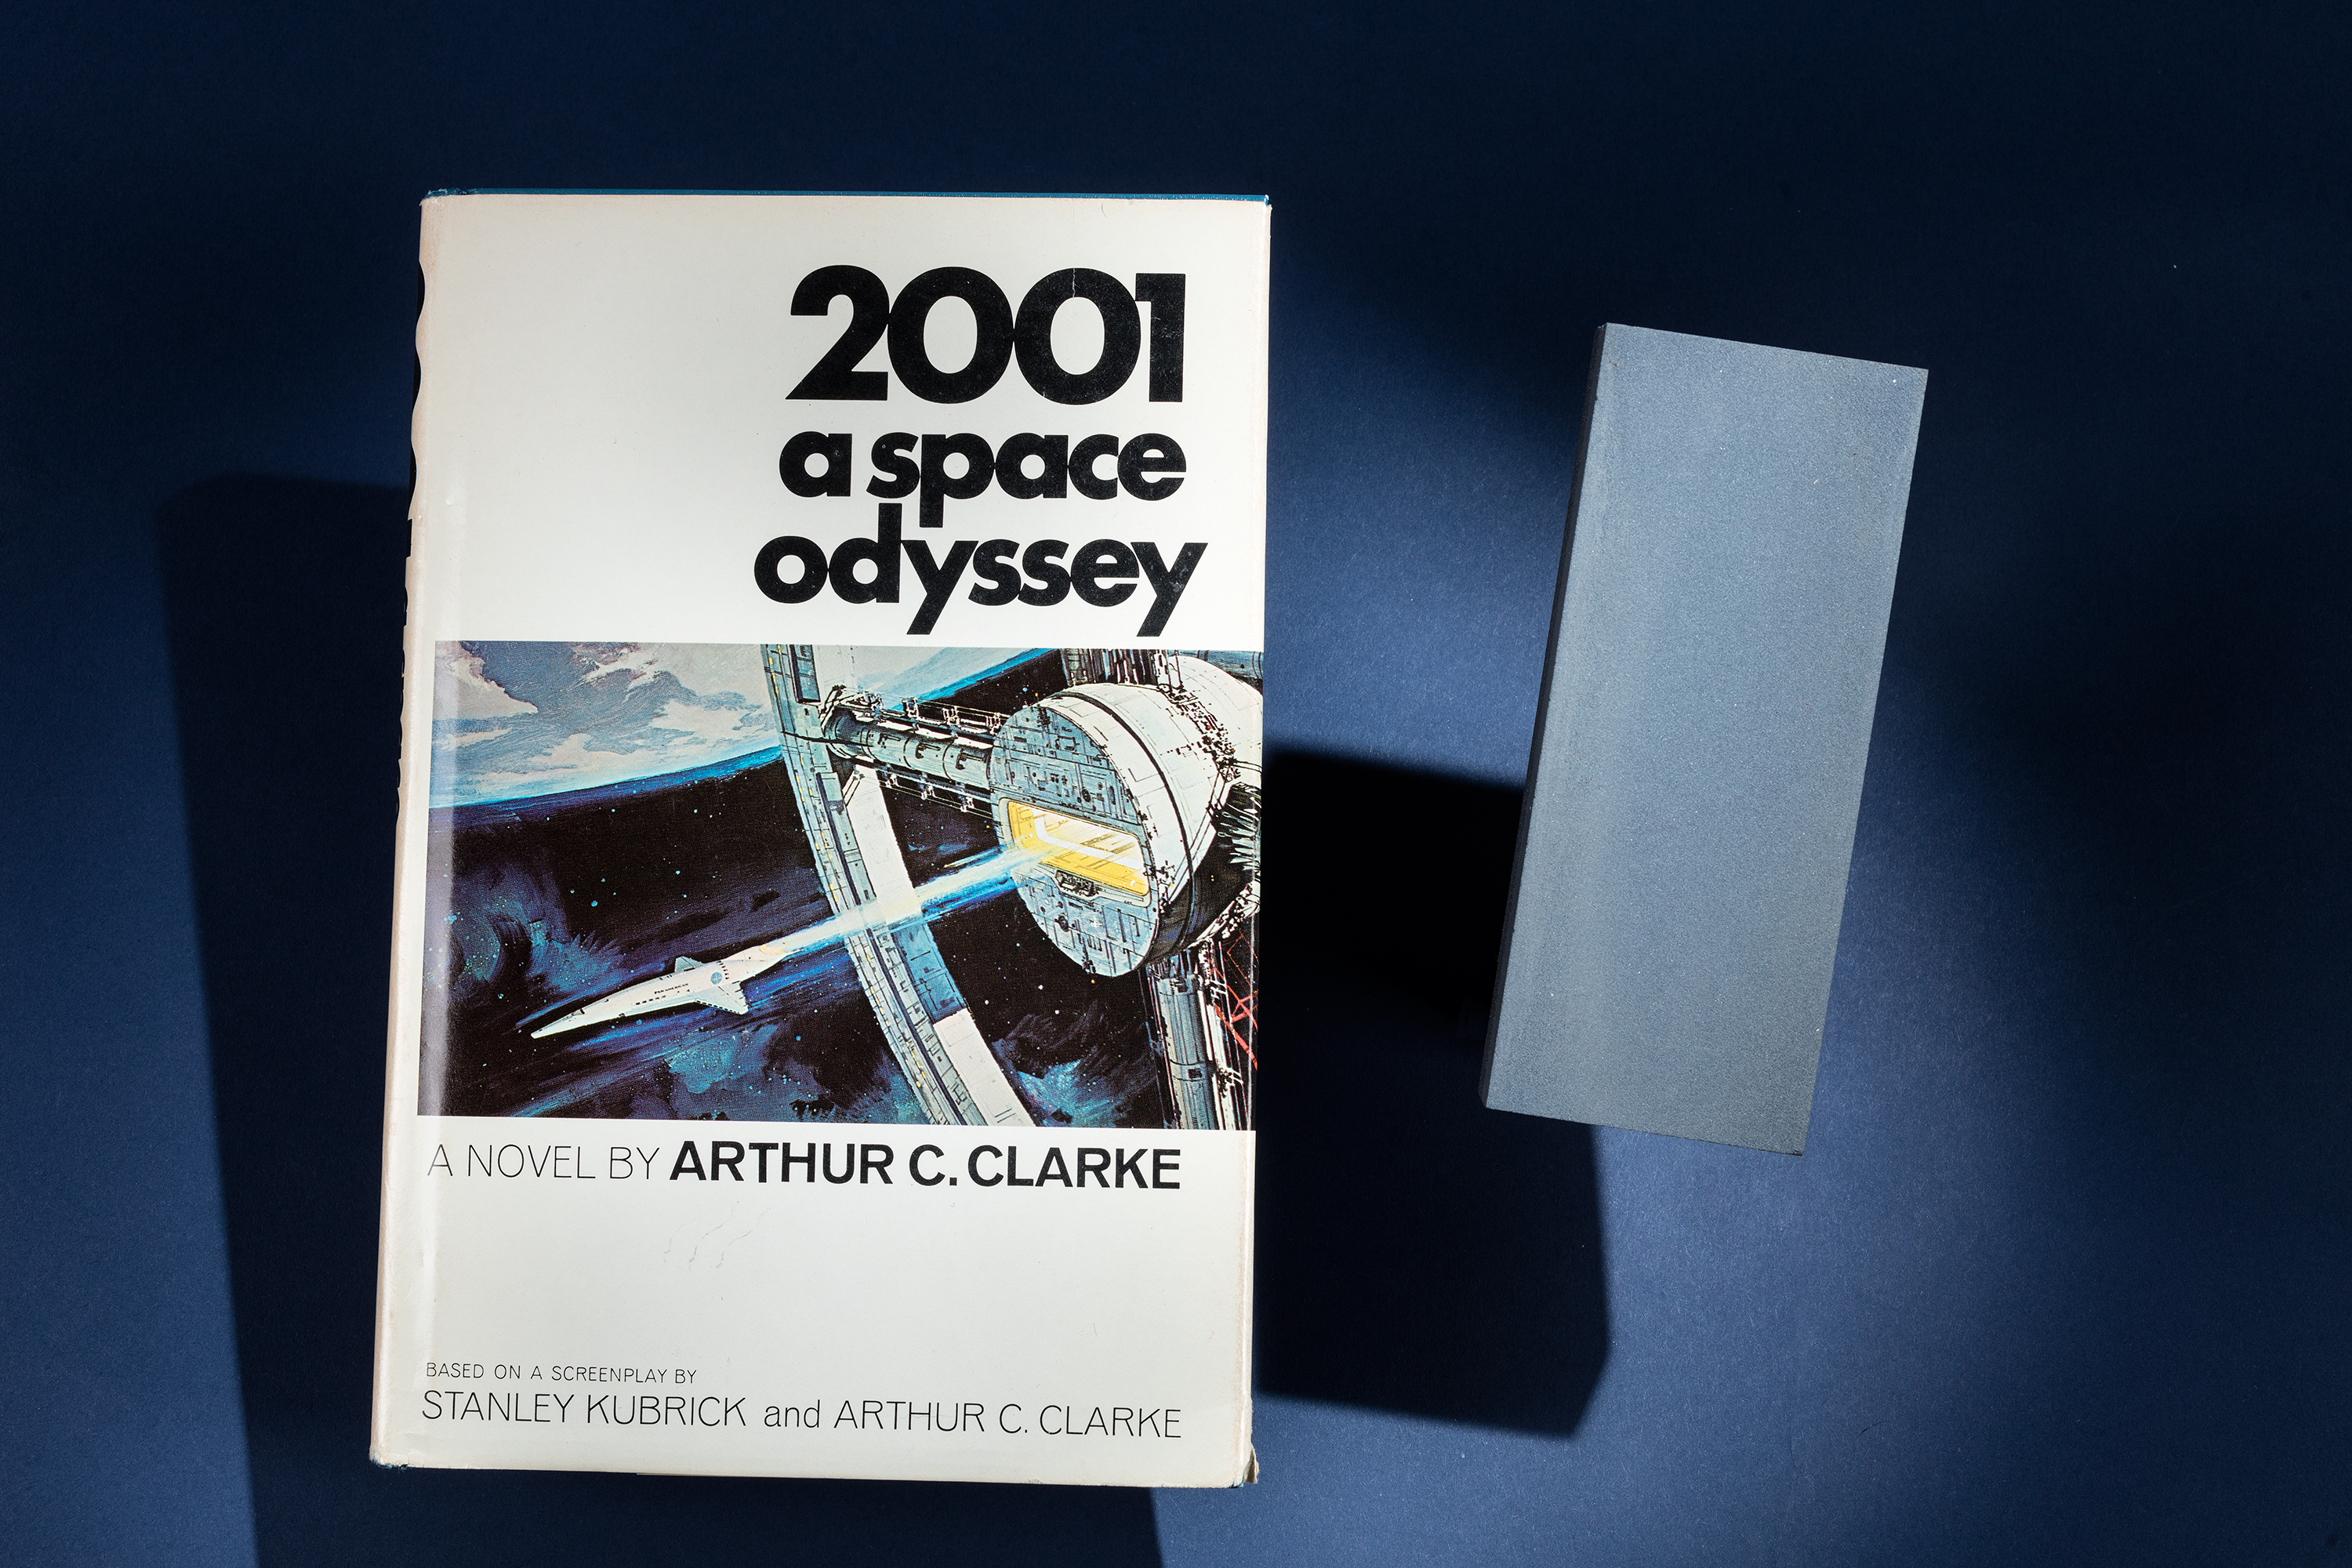 i 2001 a space odyssey i book and monolith flown on space shuttle i atlantis i i 2001 a space odyssey i book and monolith flown on space shuttle i atlantis i